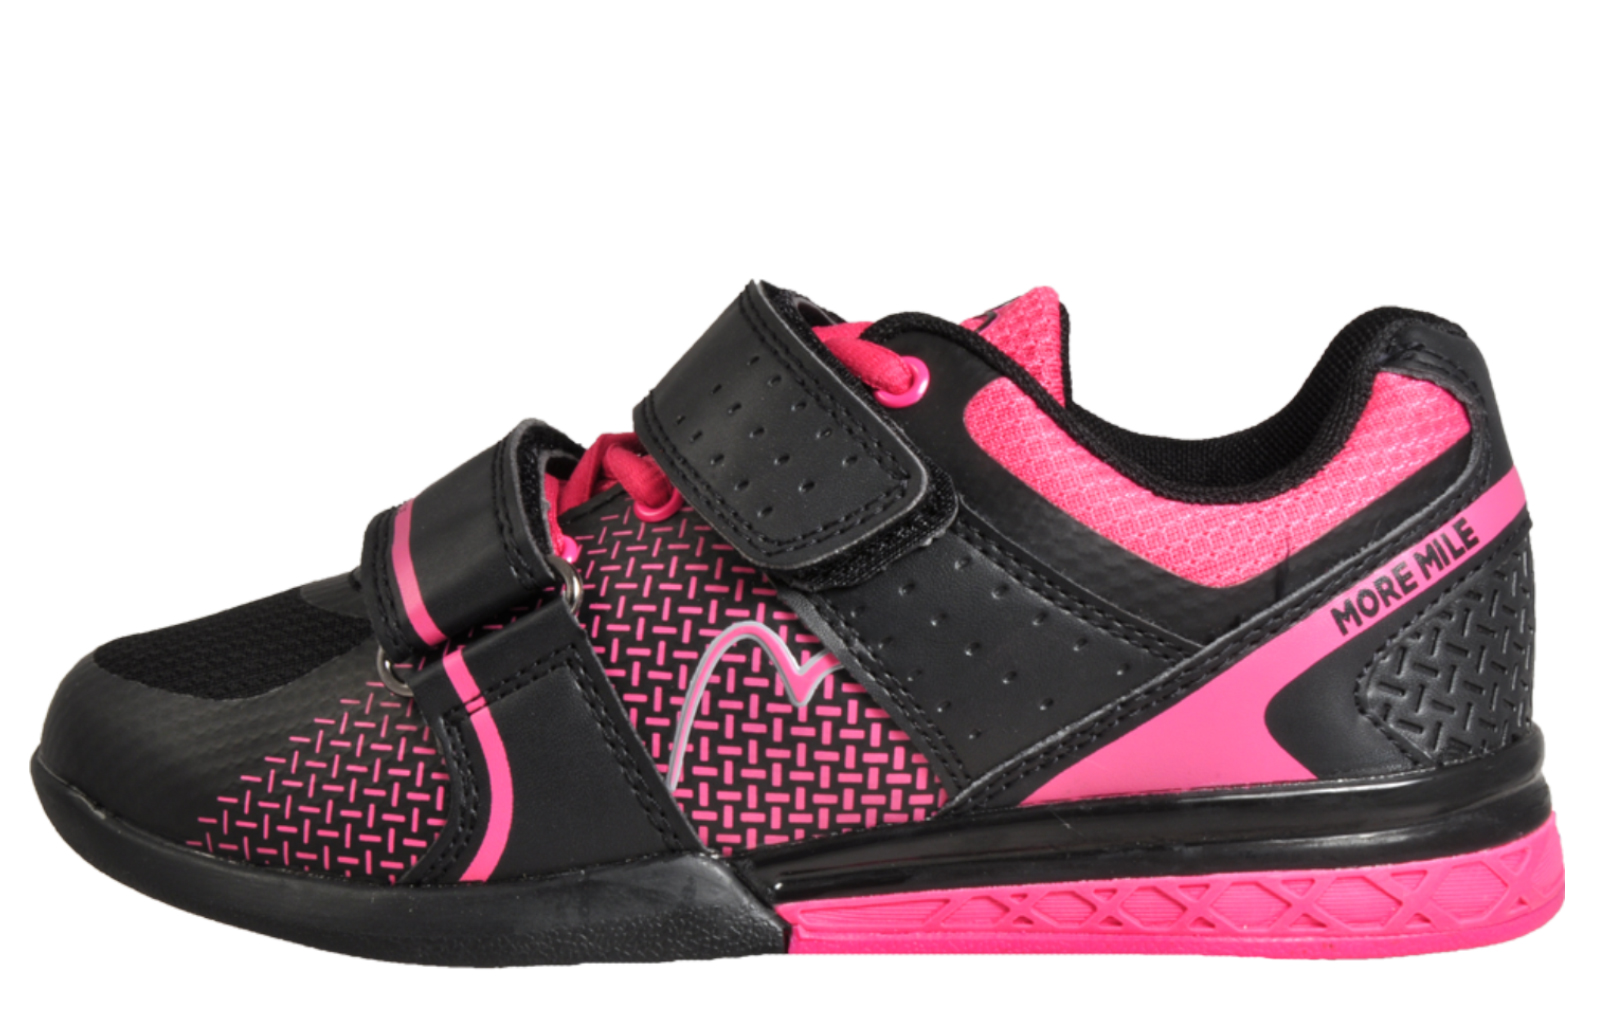 Black   Pink. More Mile Super Lift 3 Weightlifting   Crossfit Womens -  MM170712. alternate view 2 ac2bbbabe